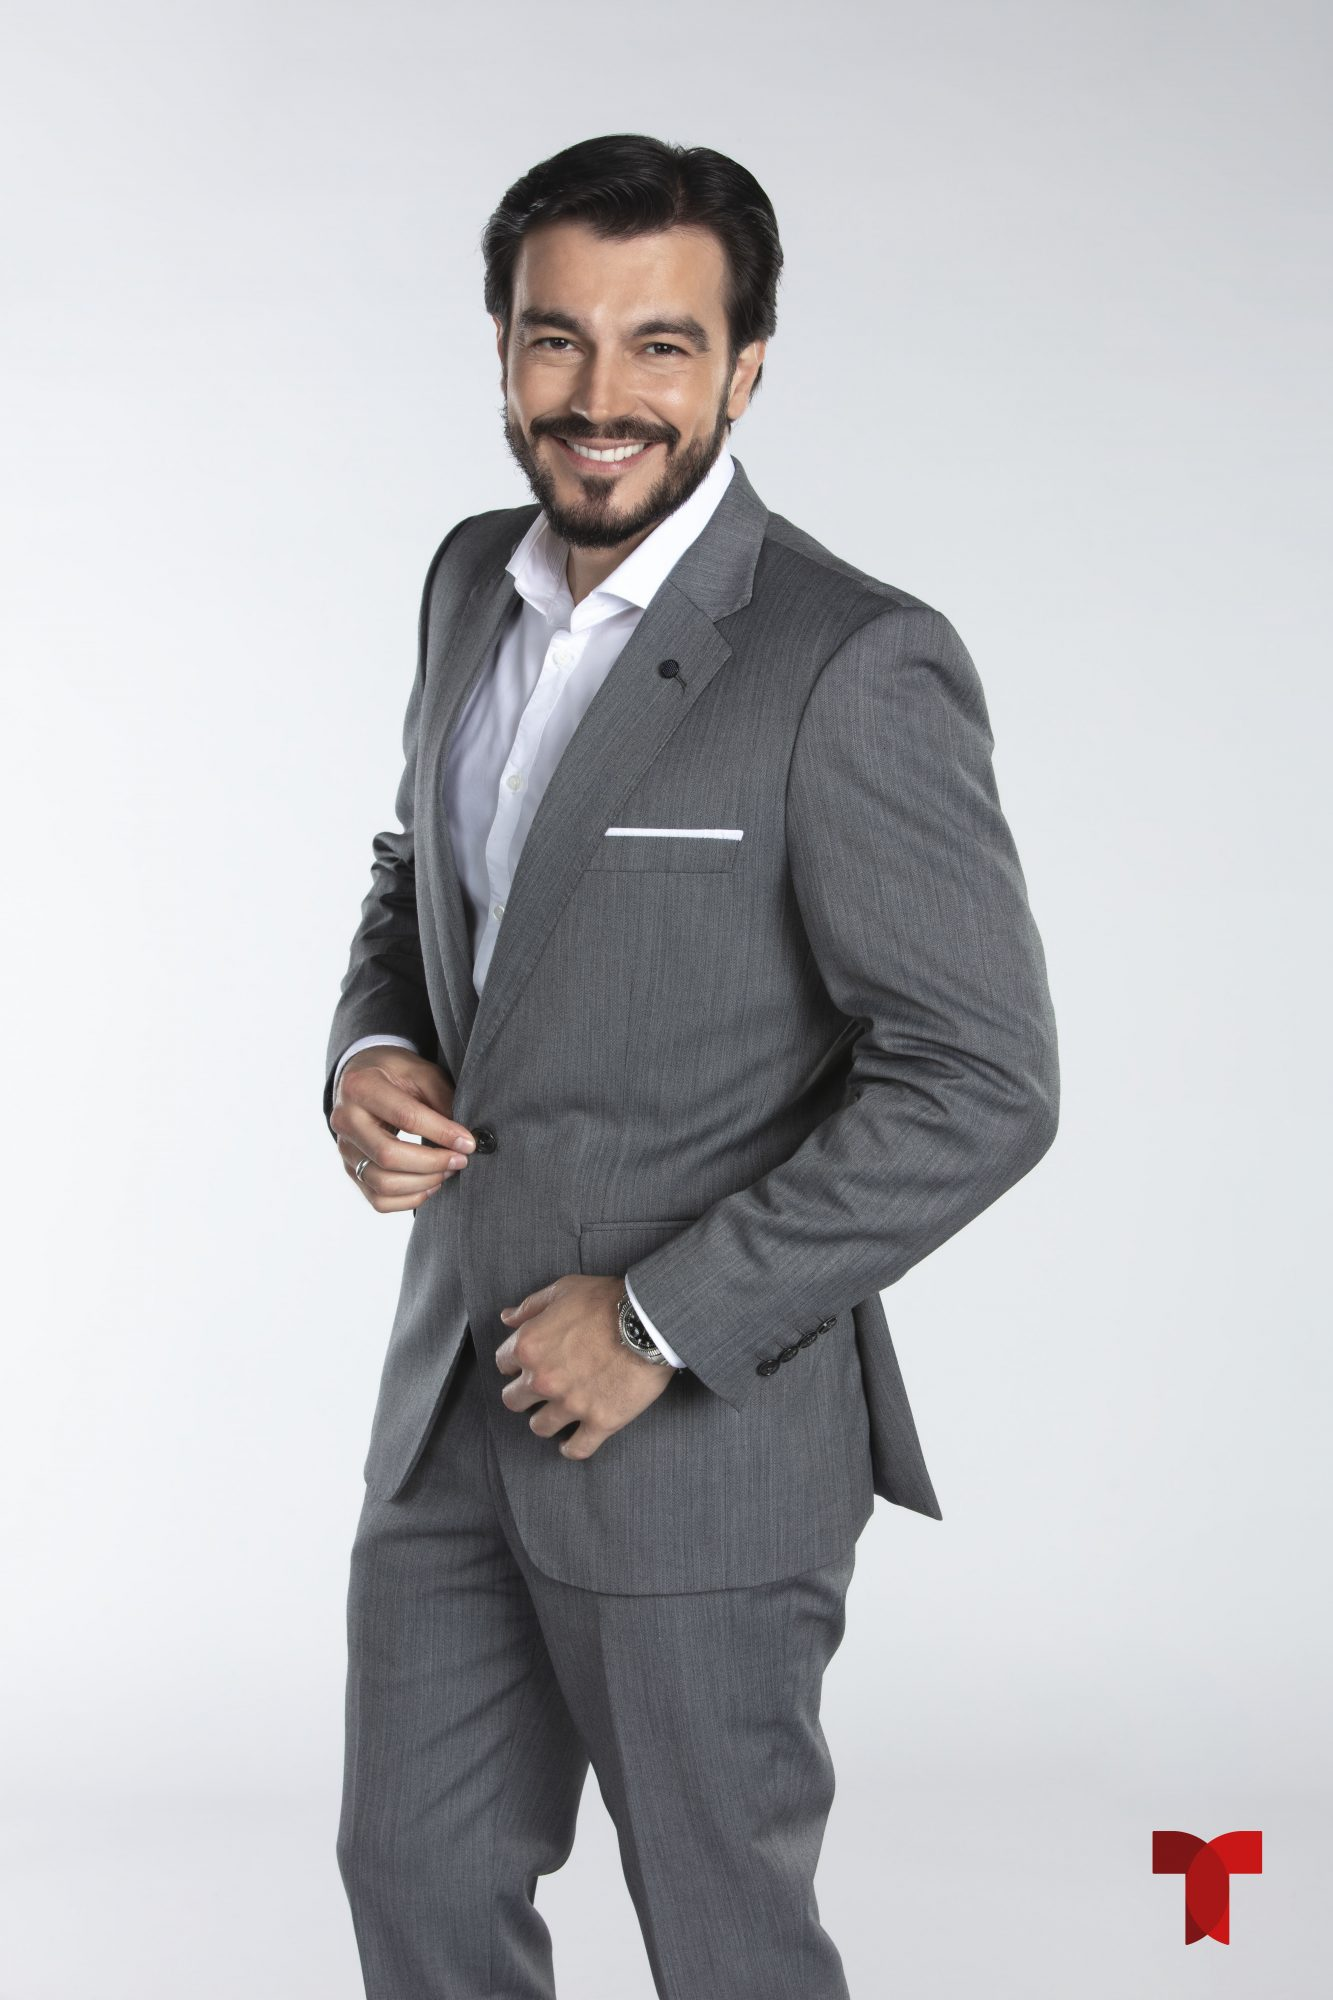 Luciano D'Alessandro (Jorge)